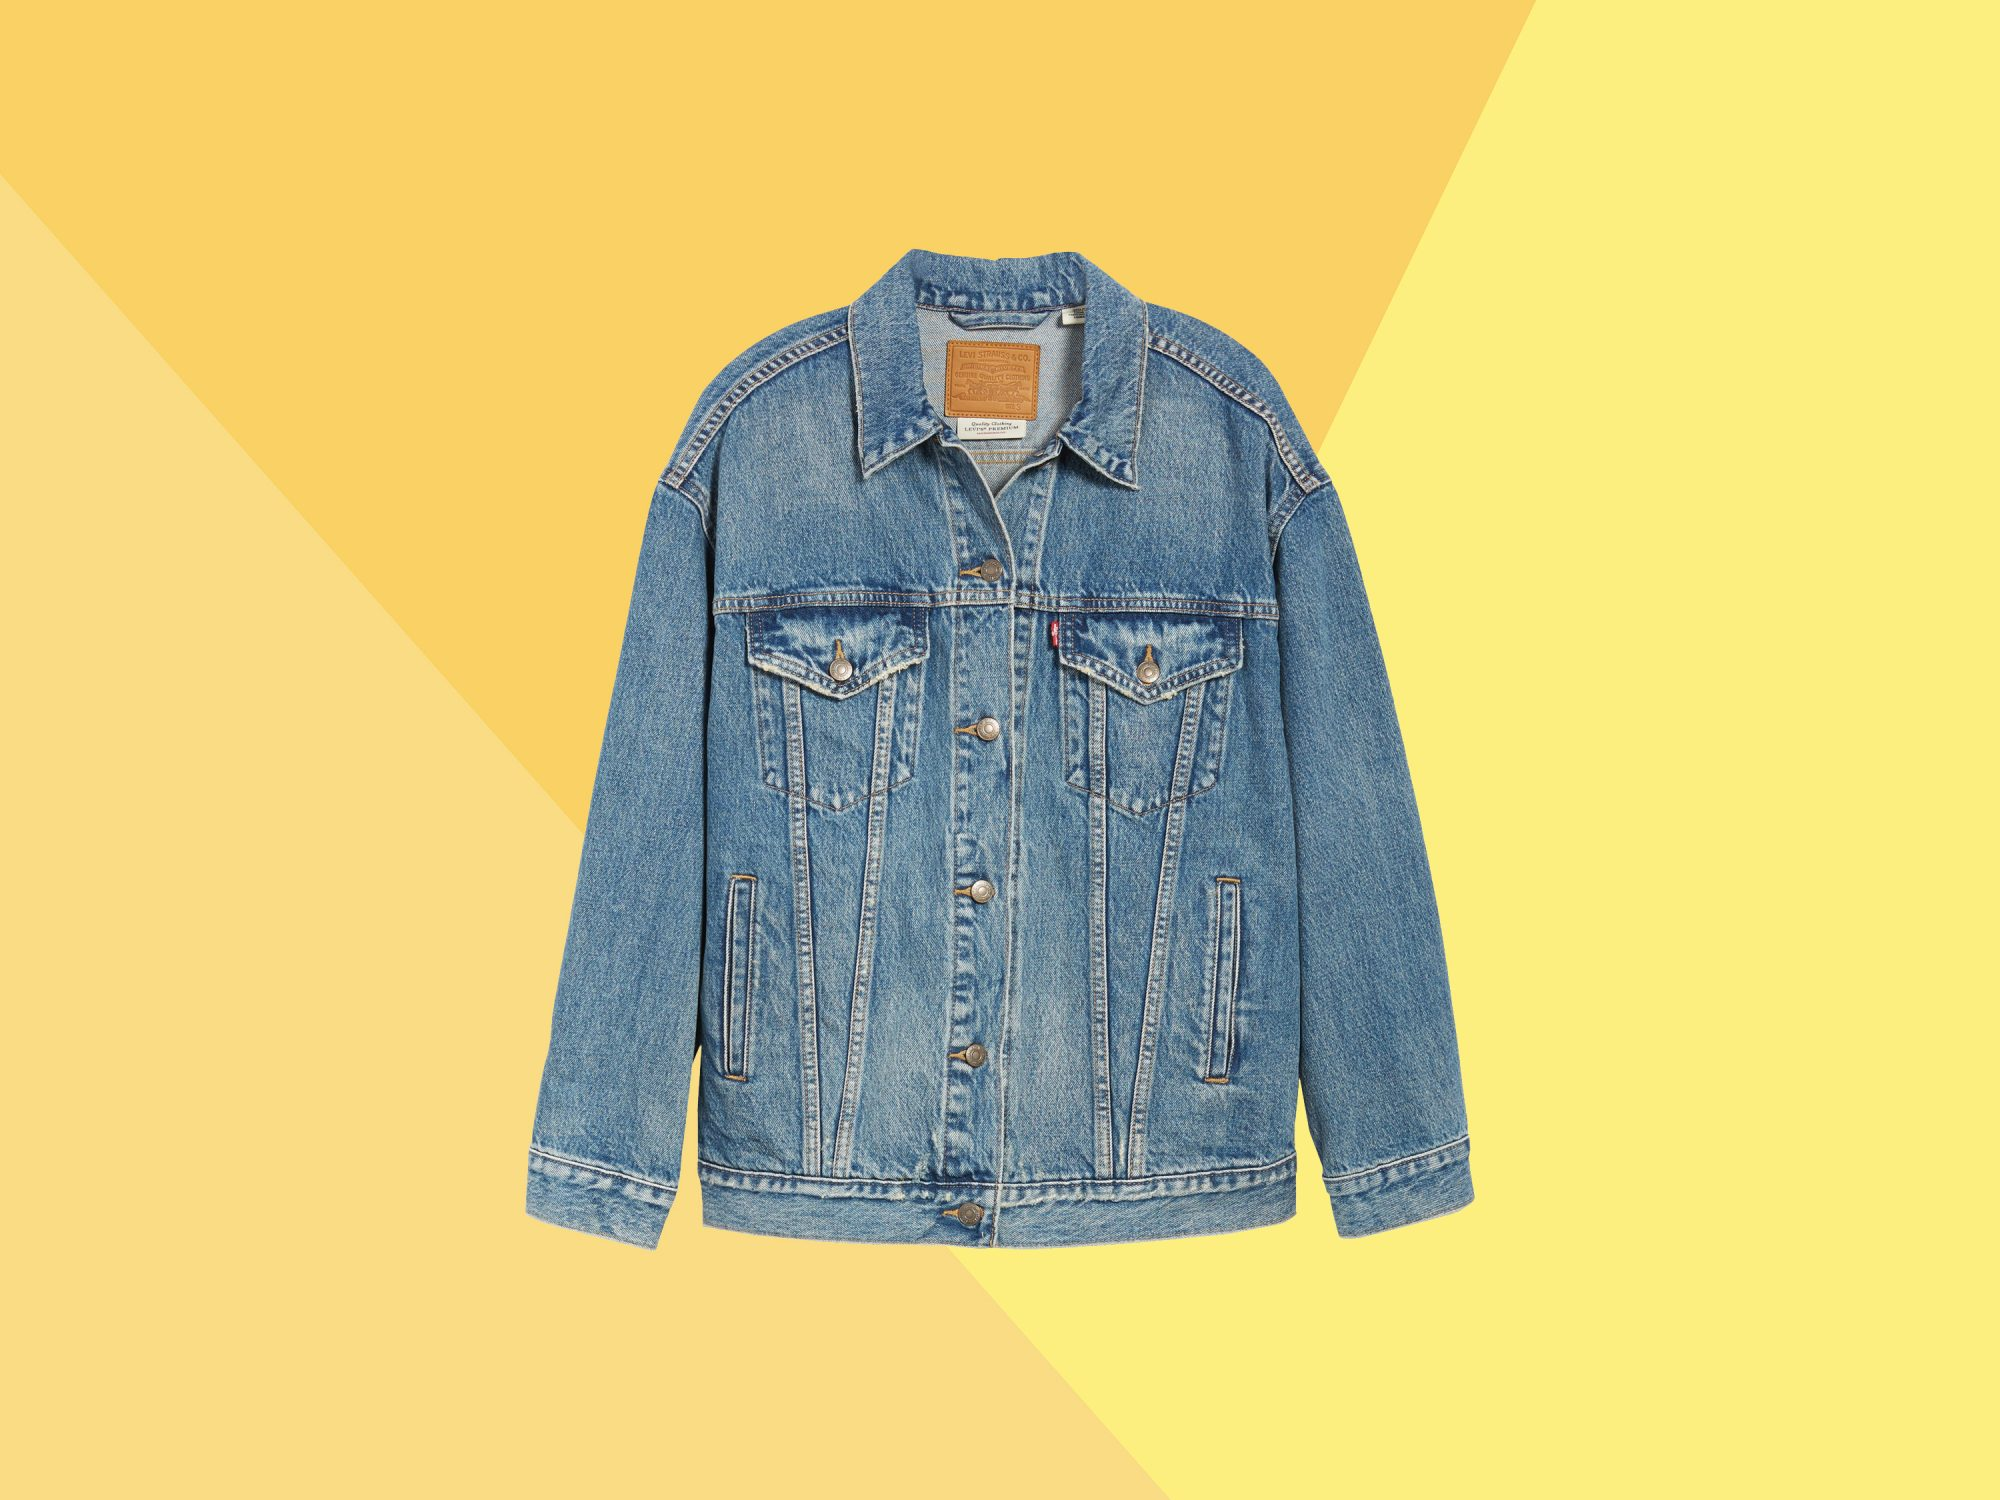 ab3a4103a1699 How to Wear a Jean Jacket With Any Outfit | Real Simple